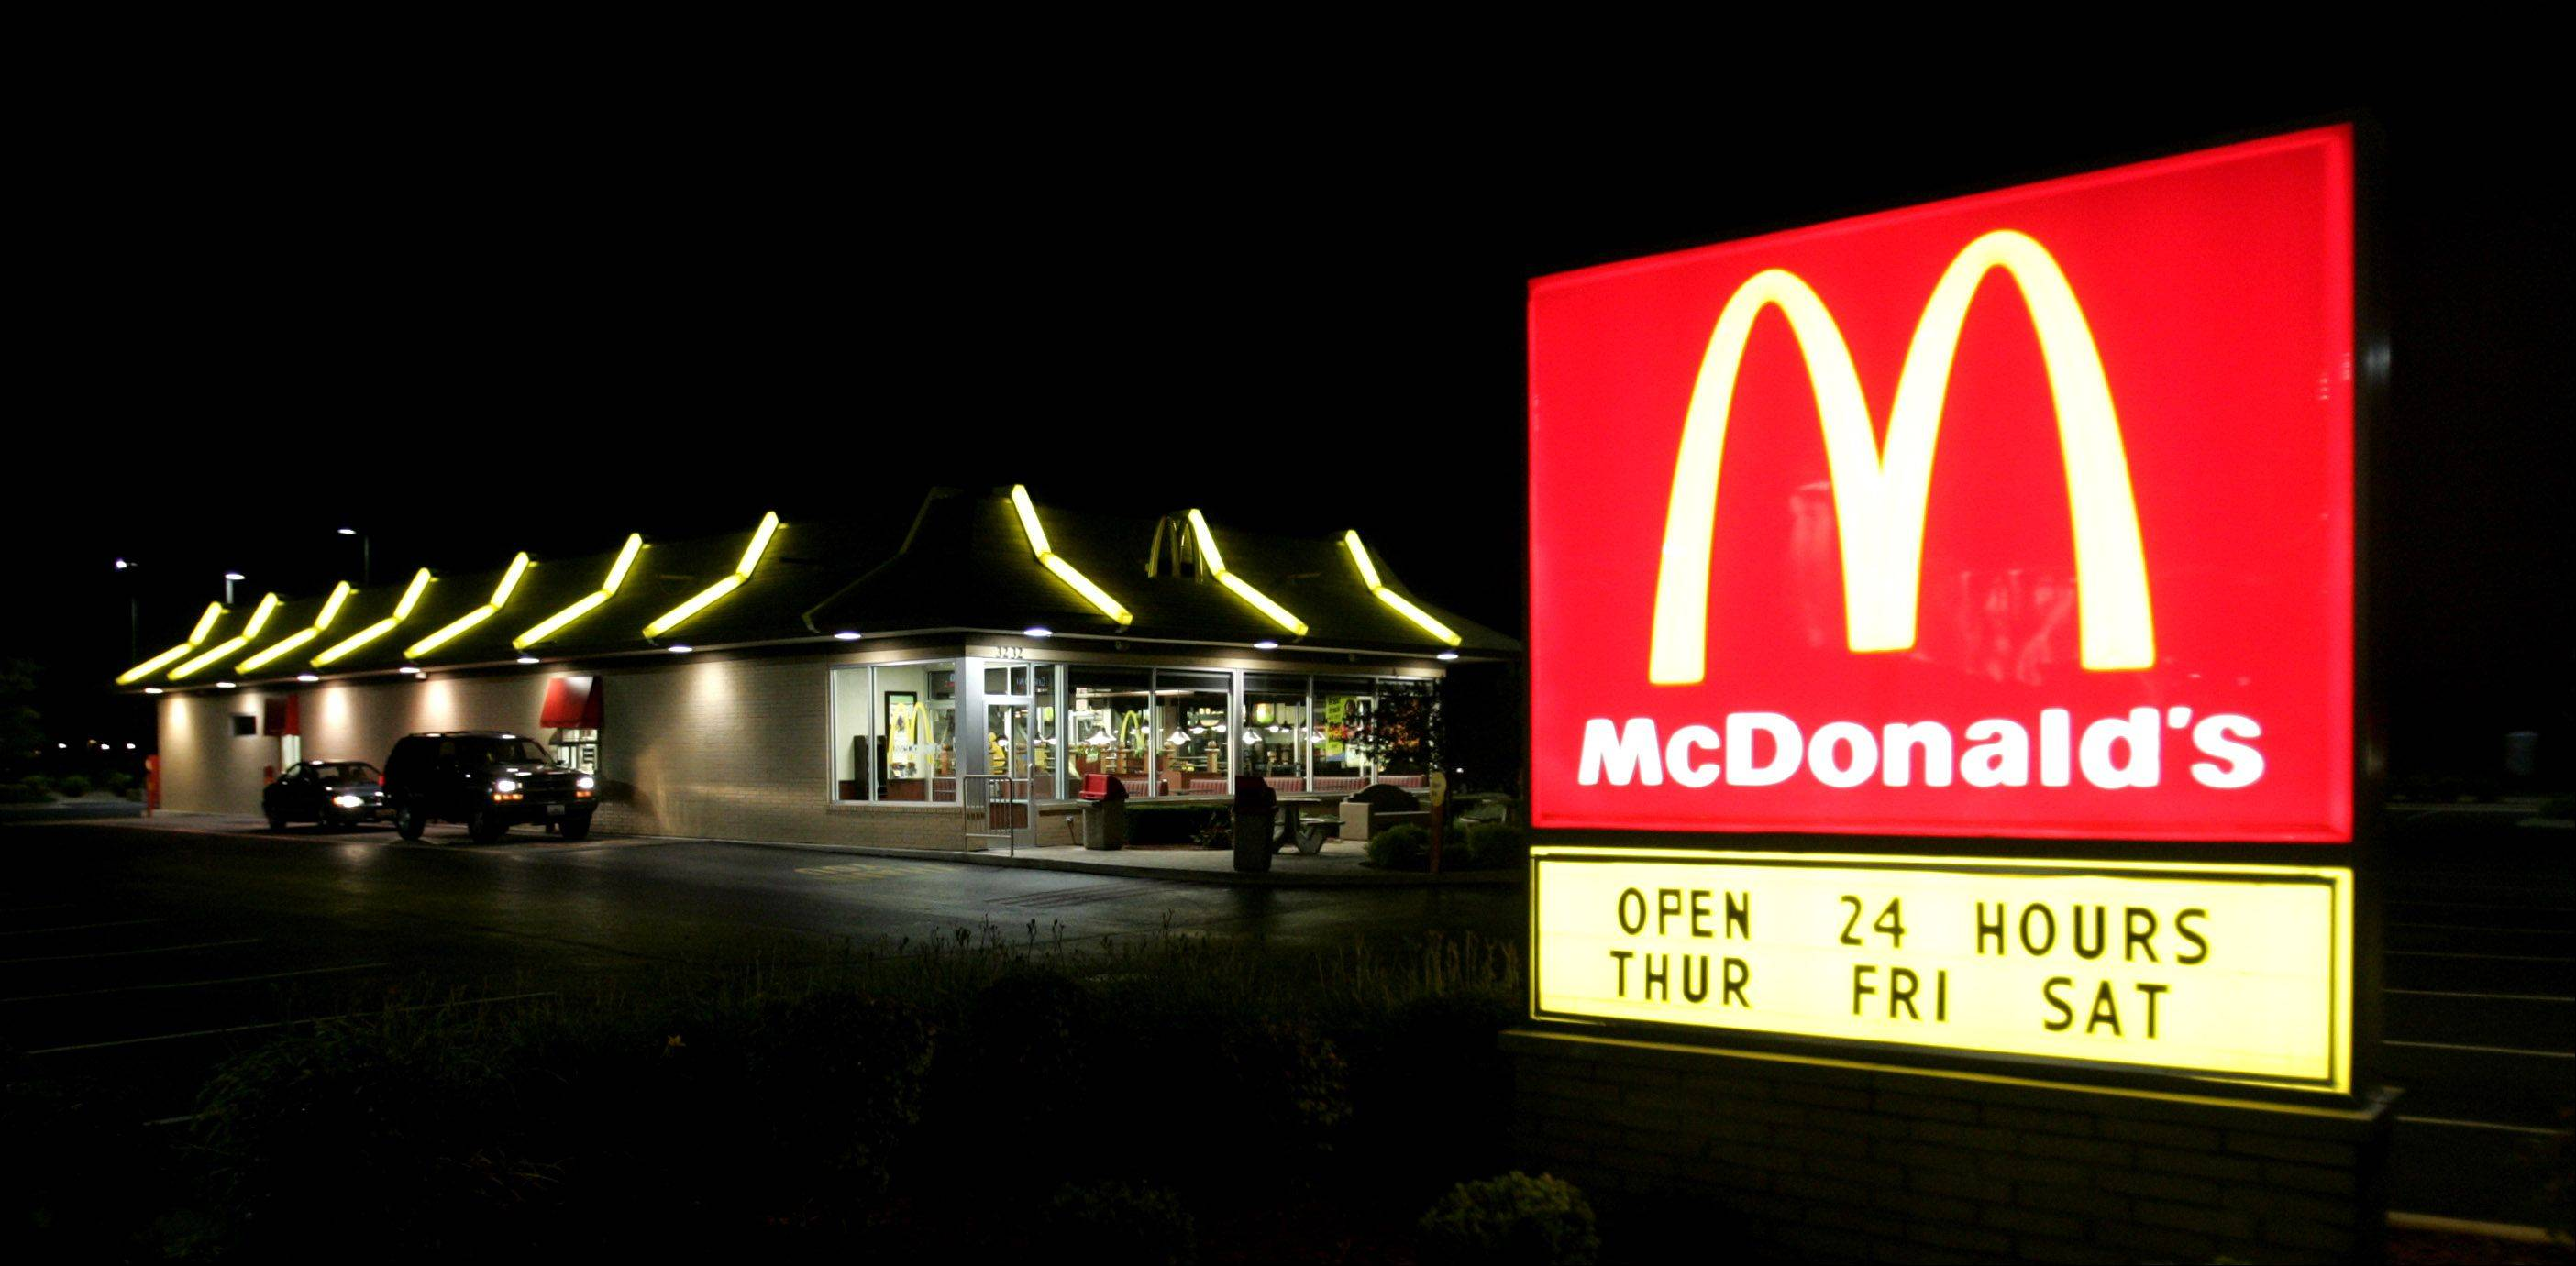 McDonald's and one of its franchise owners agreed to pay $700,000 to members of the Muslim community to settle allegations a Detroit-area restaurant falsely advertised its food as being prepared according to Islamic dietary law.